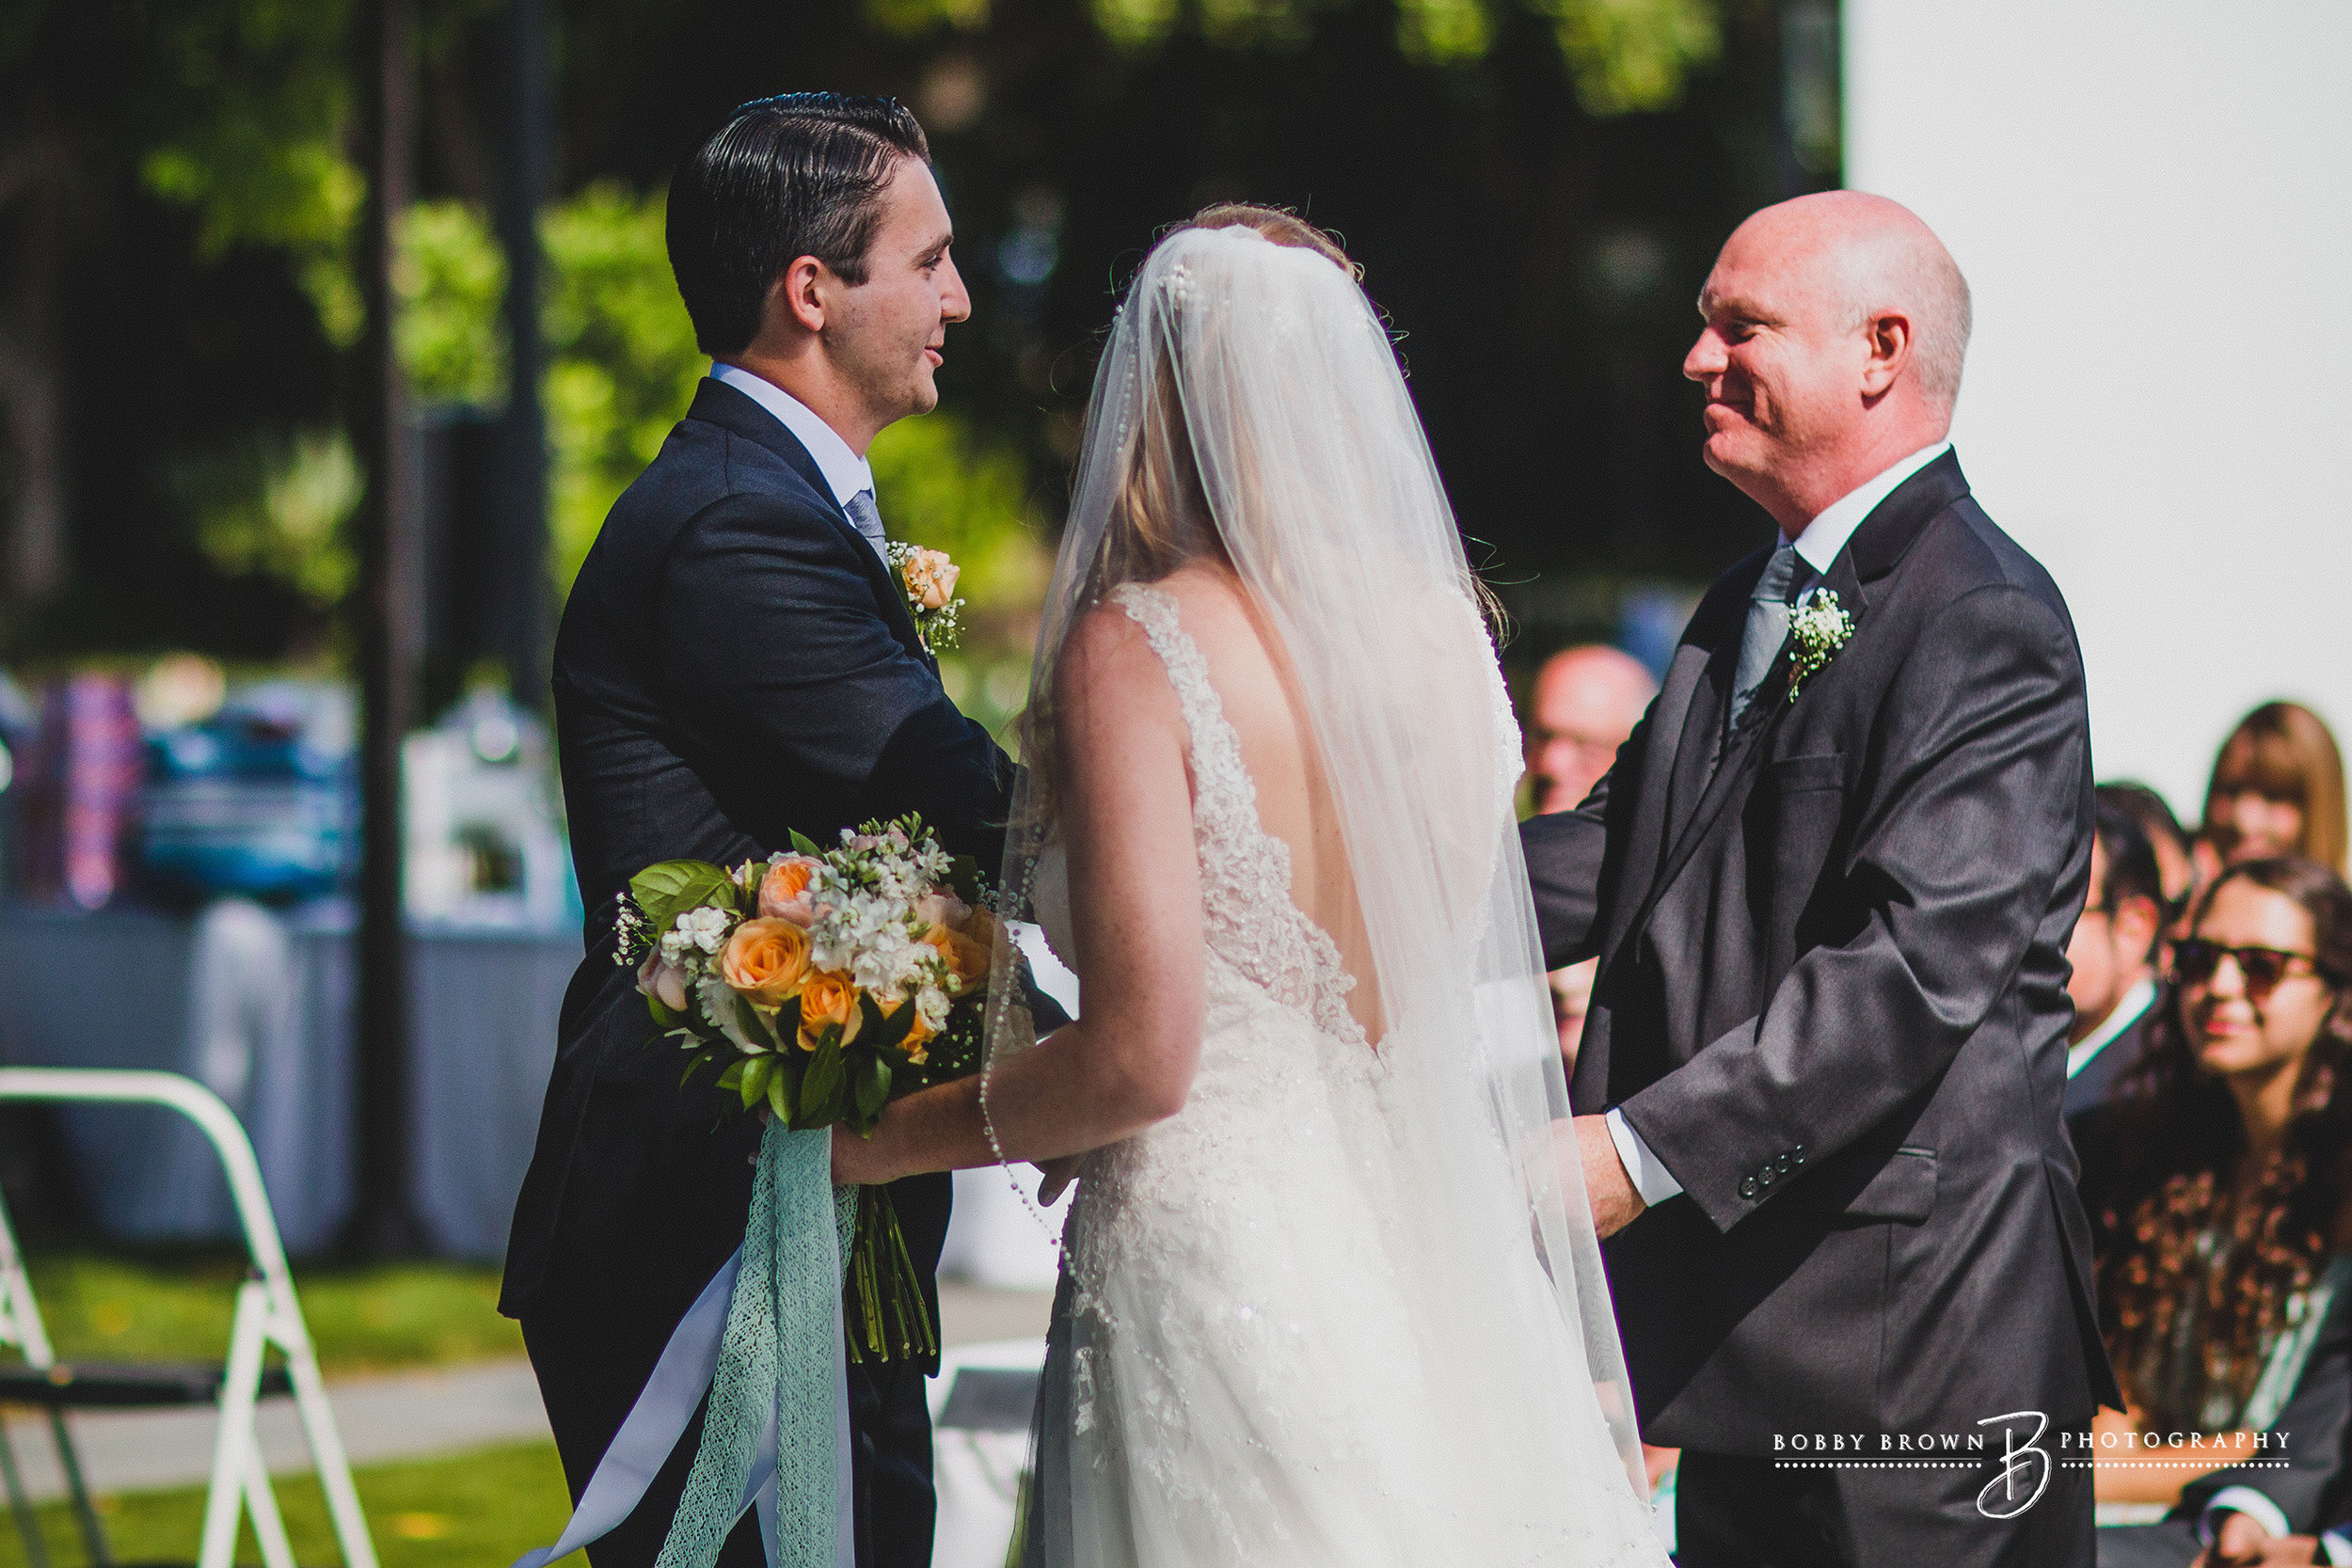 hugginswedding-539.jpg